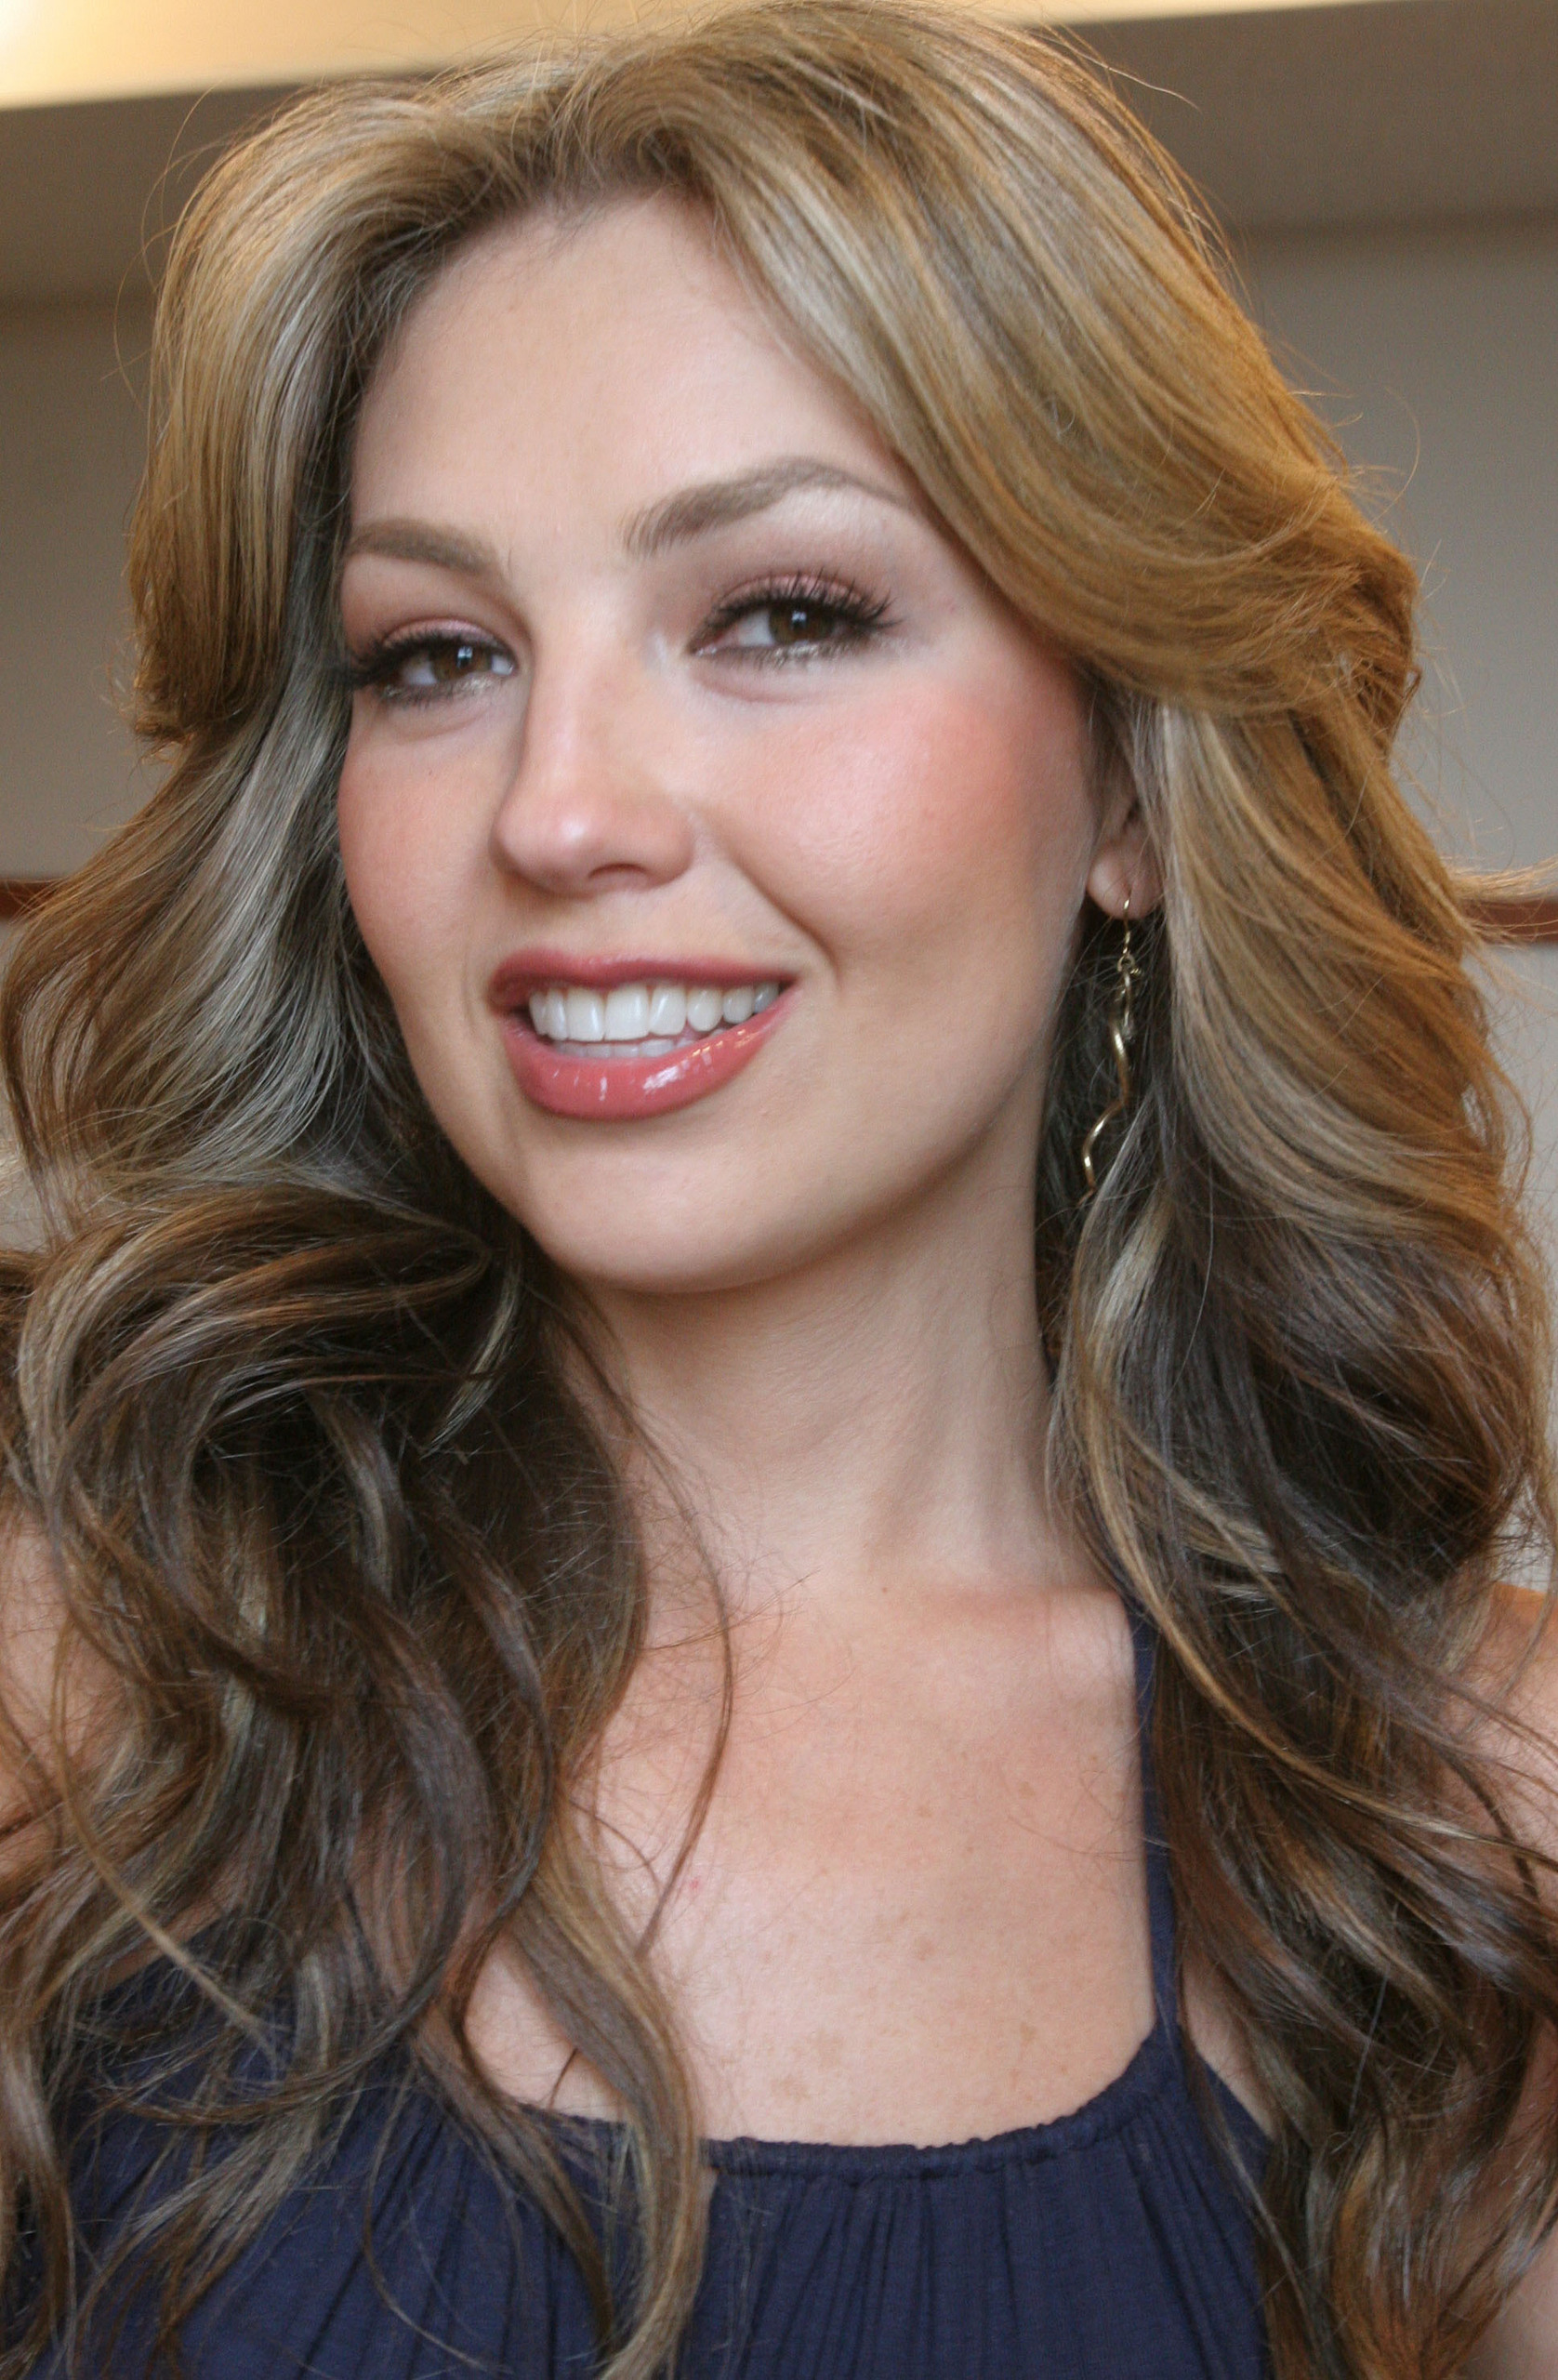 http://images2.fanpop.com/images/photos/6700000/Thalia-thalia-6708665-1676-2560.jpg